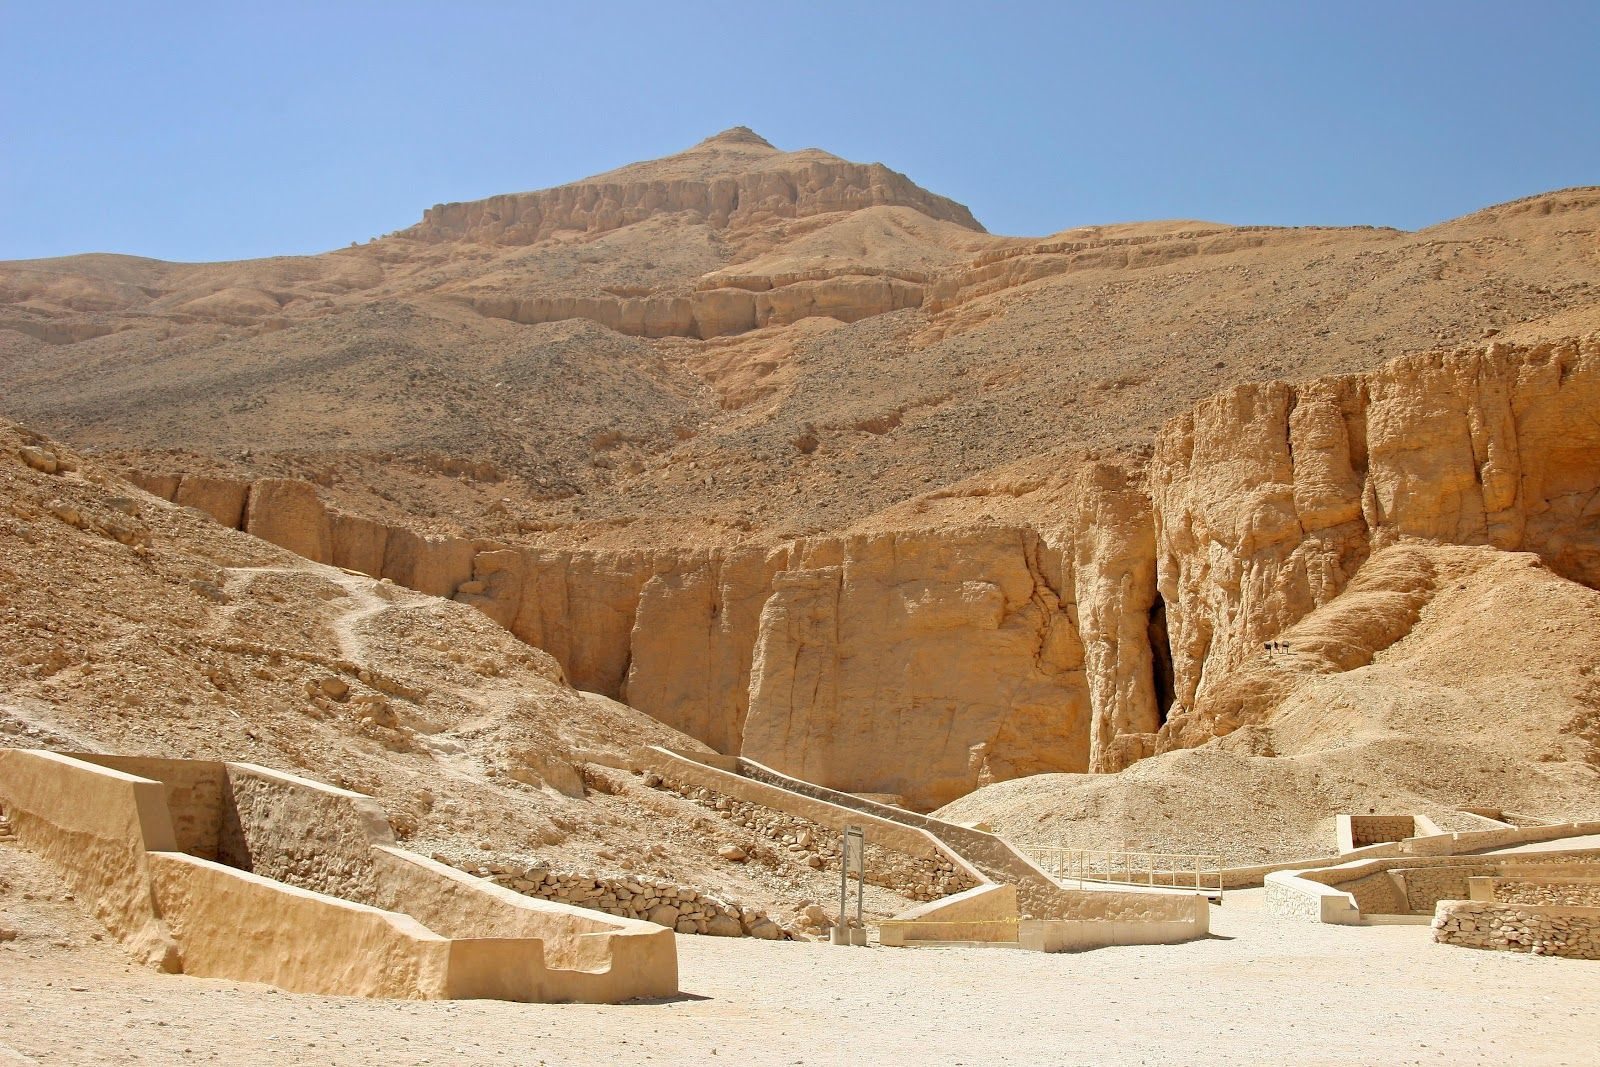 Do You Want To Explore The Top Historical Sites To Visit In Egypt? If you are planning to explore Egypt this year then here are the top historical sites to visit in Egypt and must see Sights in Egypt such as the great Pyramids of Giza and Sphinx with the temples of Luxor and Karnak. For more info click on the link. #BookEgyptTrips #EgyptTours